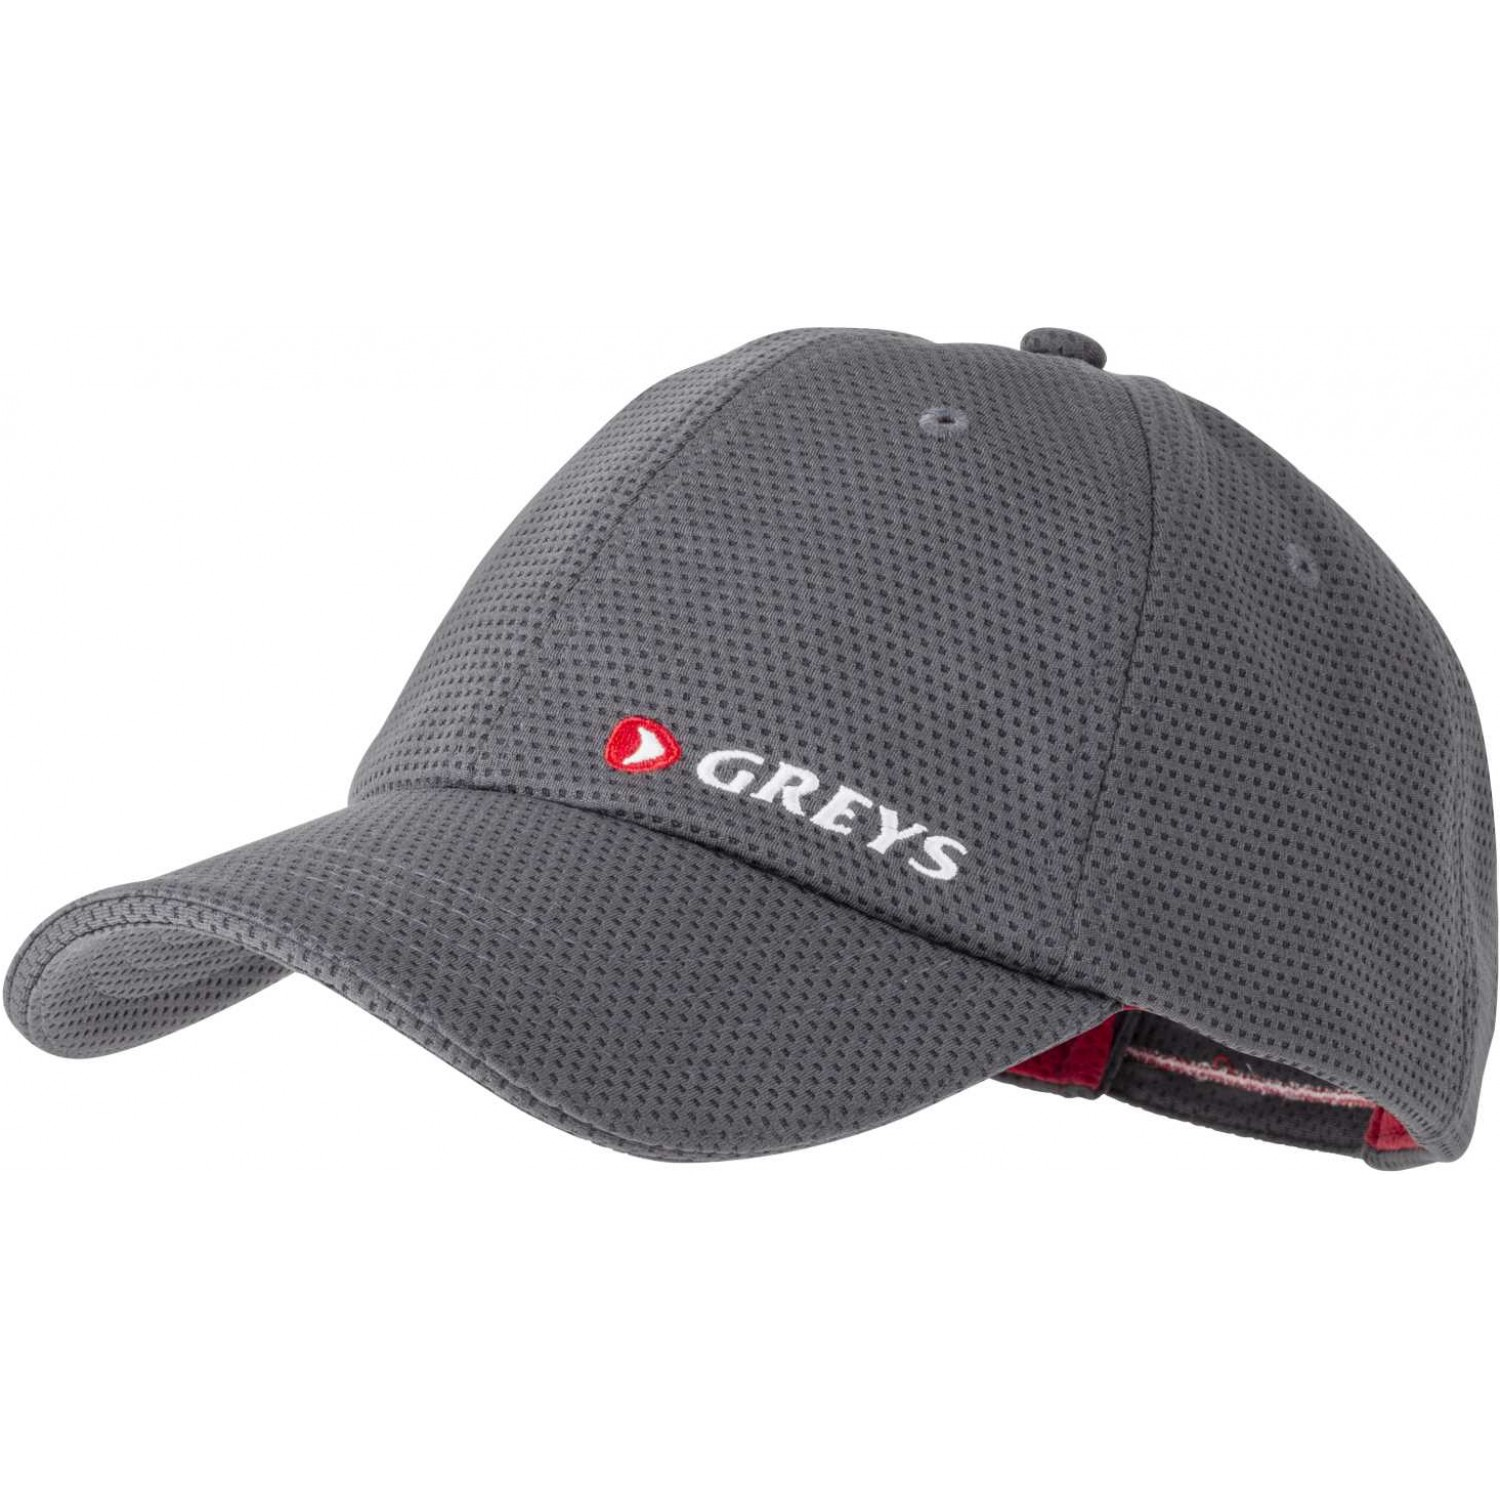 Greys Performance Cap Graphite